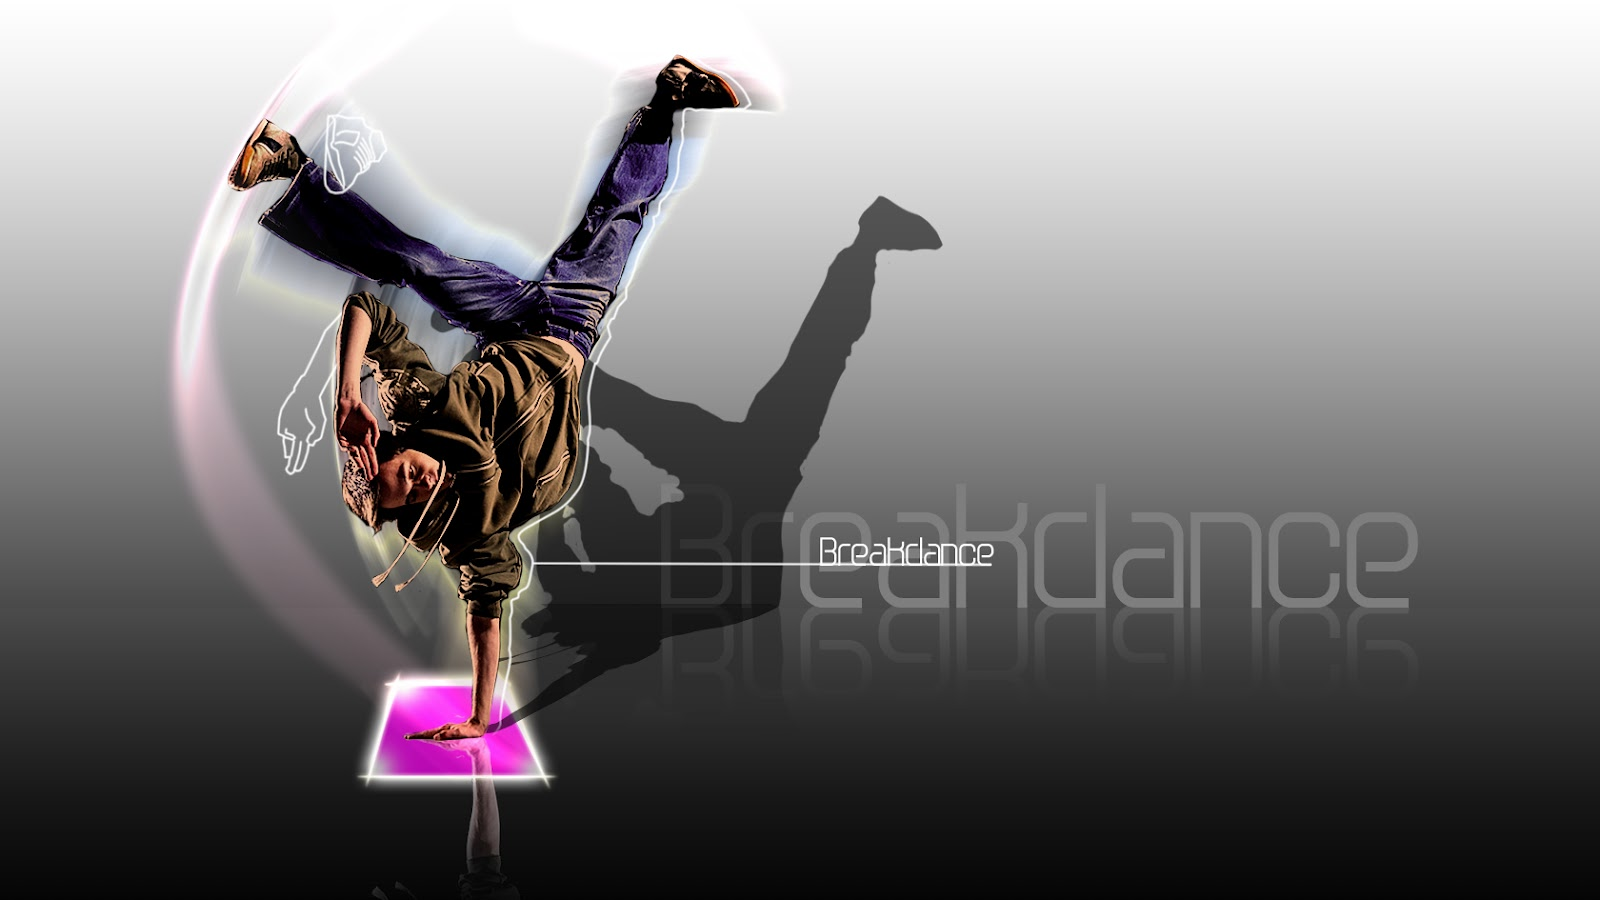 wallpaper hip hop   break dance desktop wallpaper 1600x900